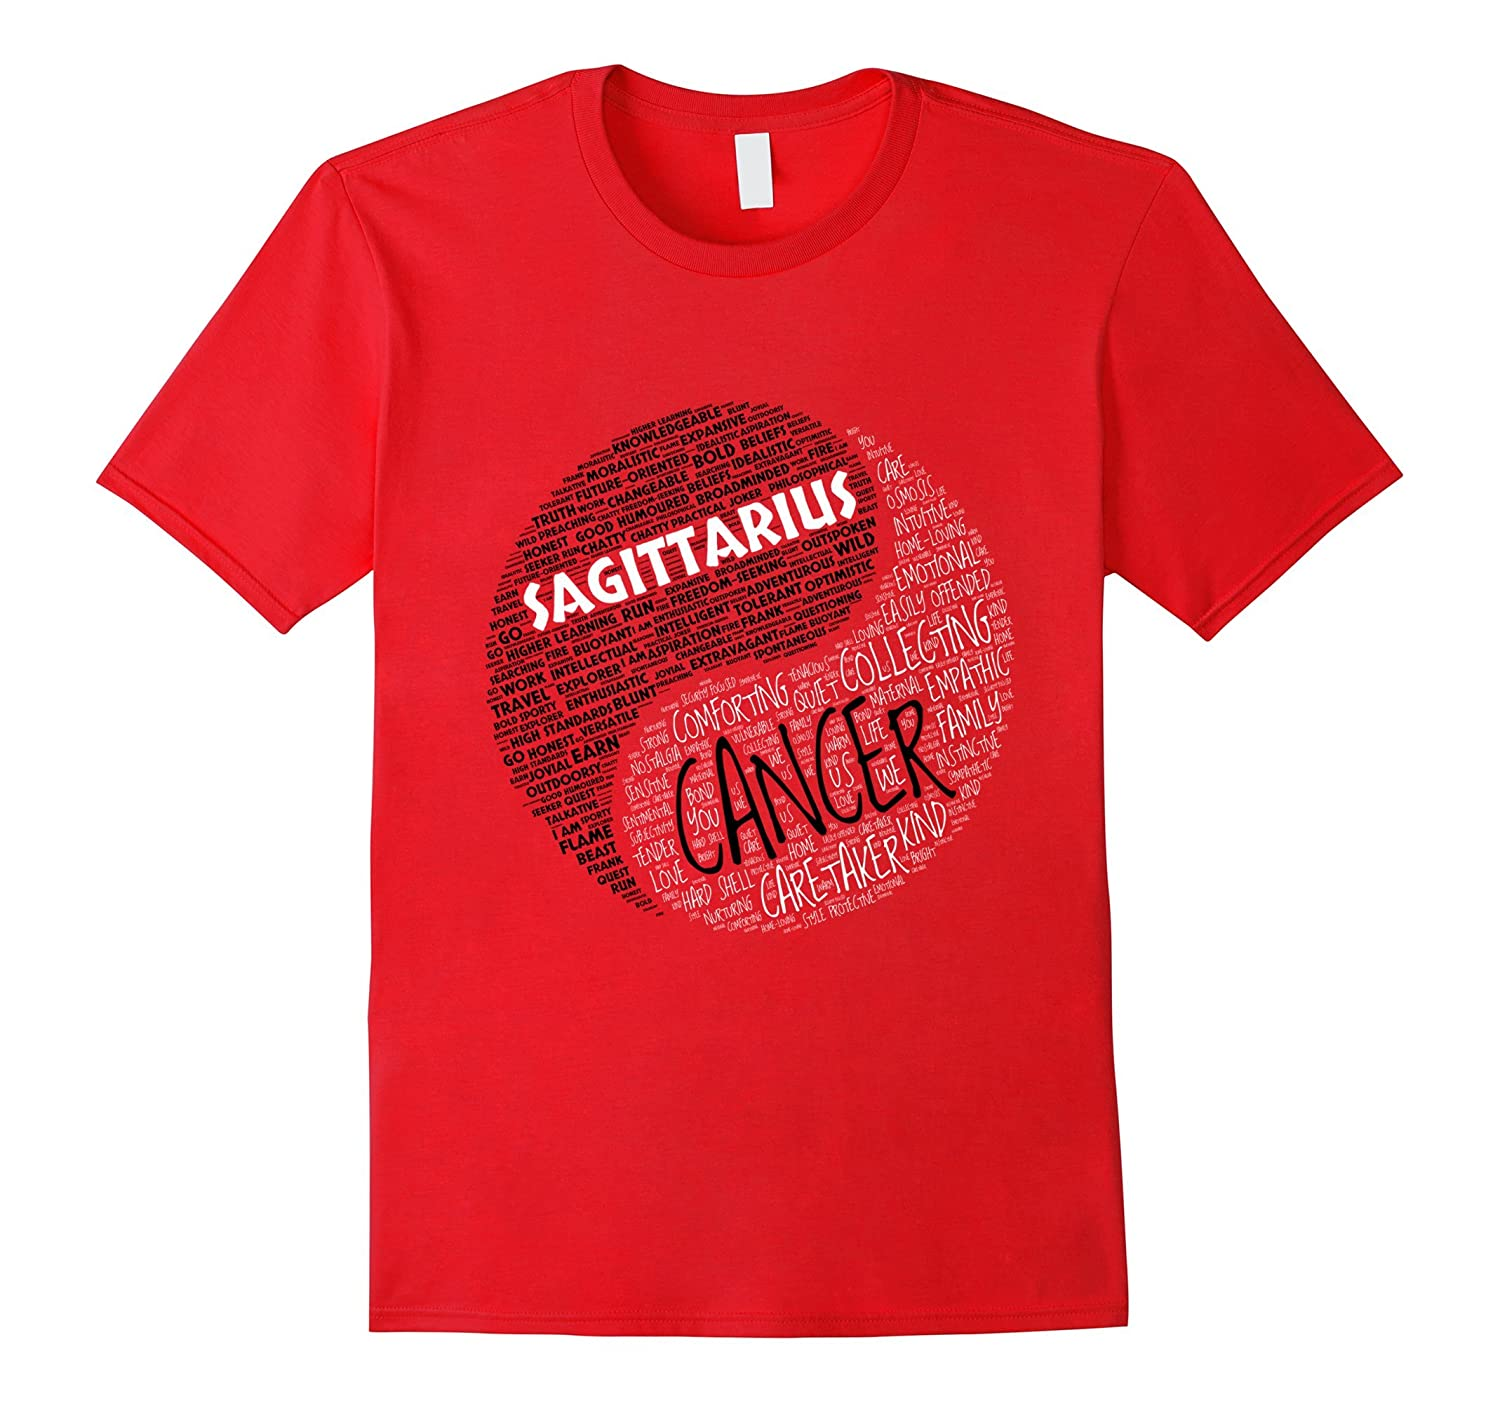 Zodiac Shirt for Men  Women Sagittarius and Cancer T-shirt-TH